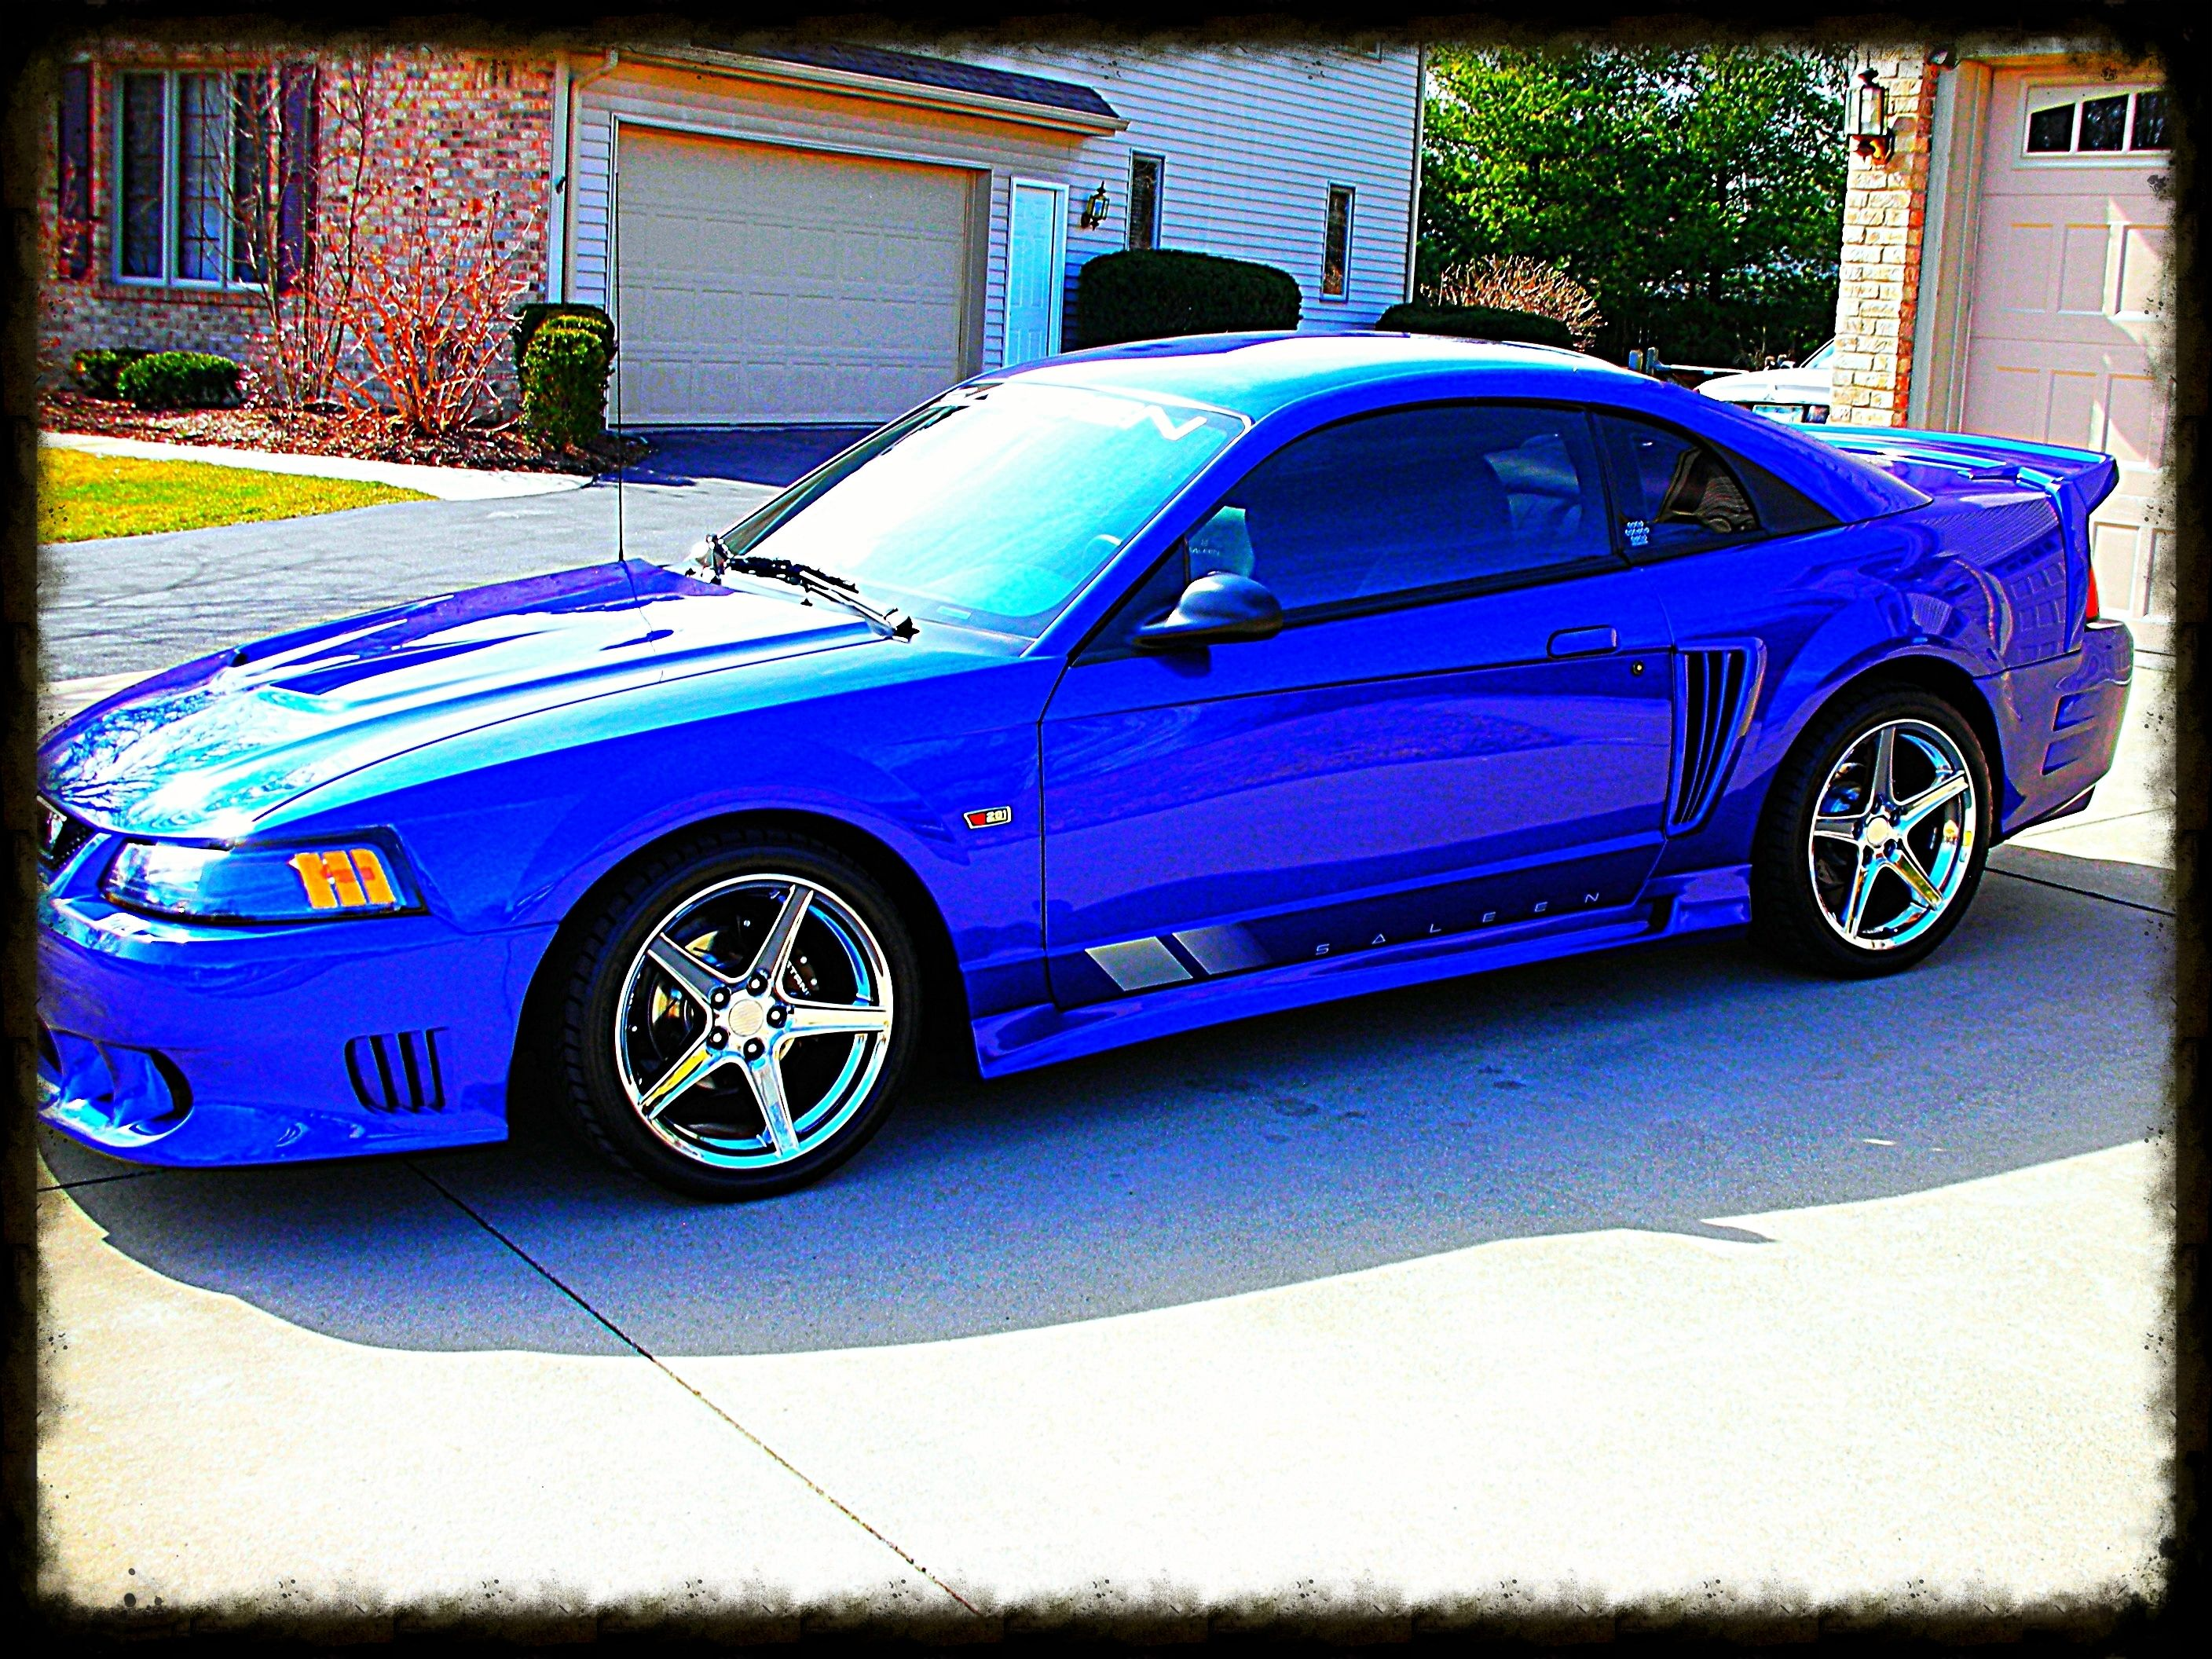 My 2003 Saleen Sonic Blue Supercharged 1 Of 8 170 Saleen